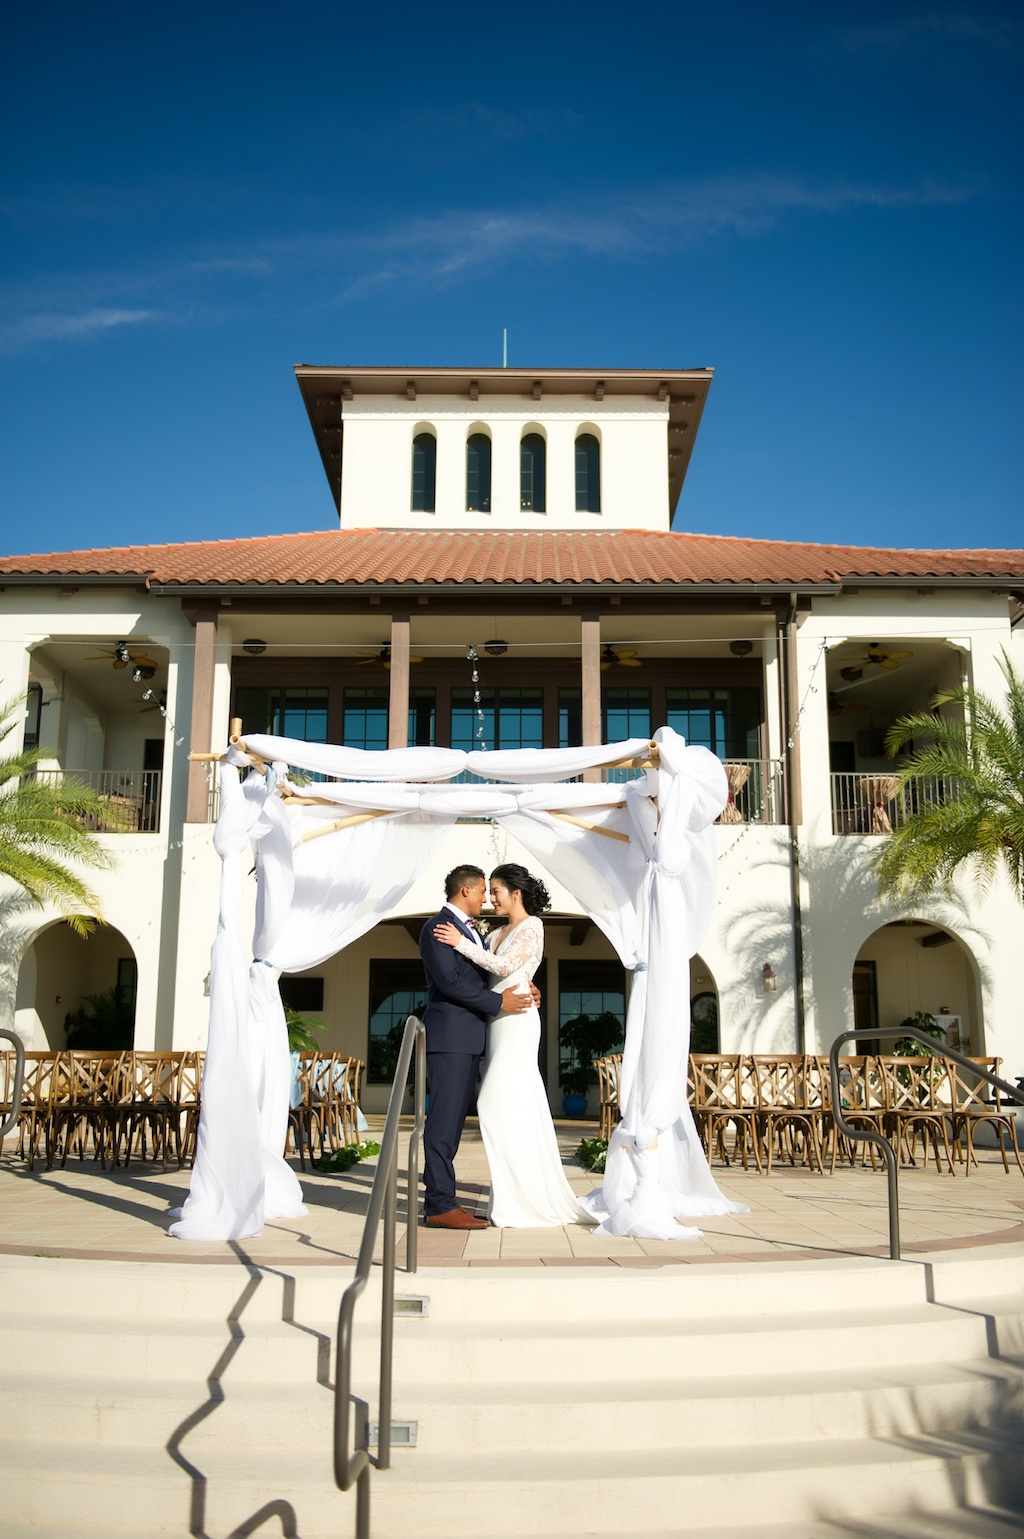 Outdoor Waterside Wedding Ceremony Portrait, Bride and Groom Under White Draped Ceremony Arch | Tampa Bay Waterfront Wedding Ceremony Venue Westshore Yacht Club